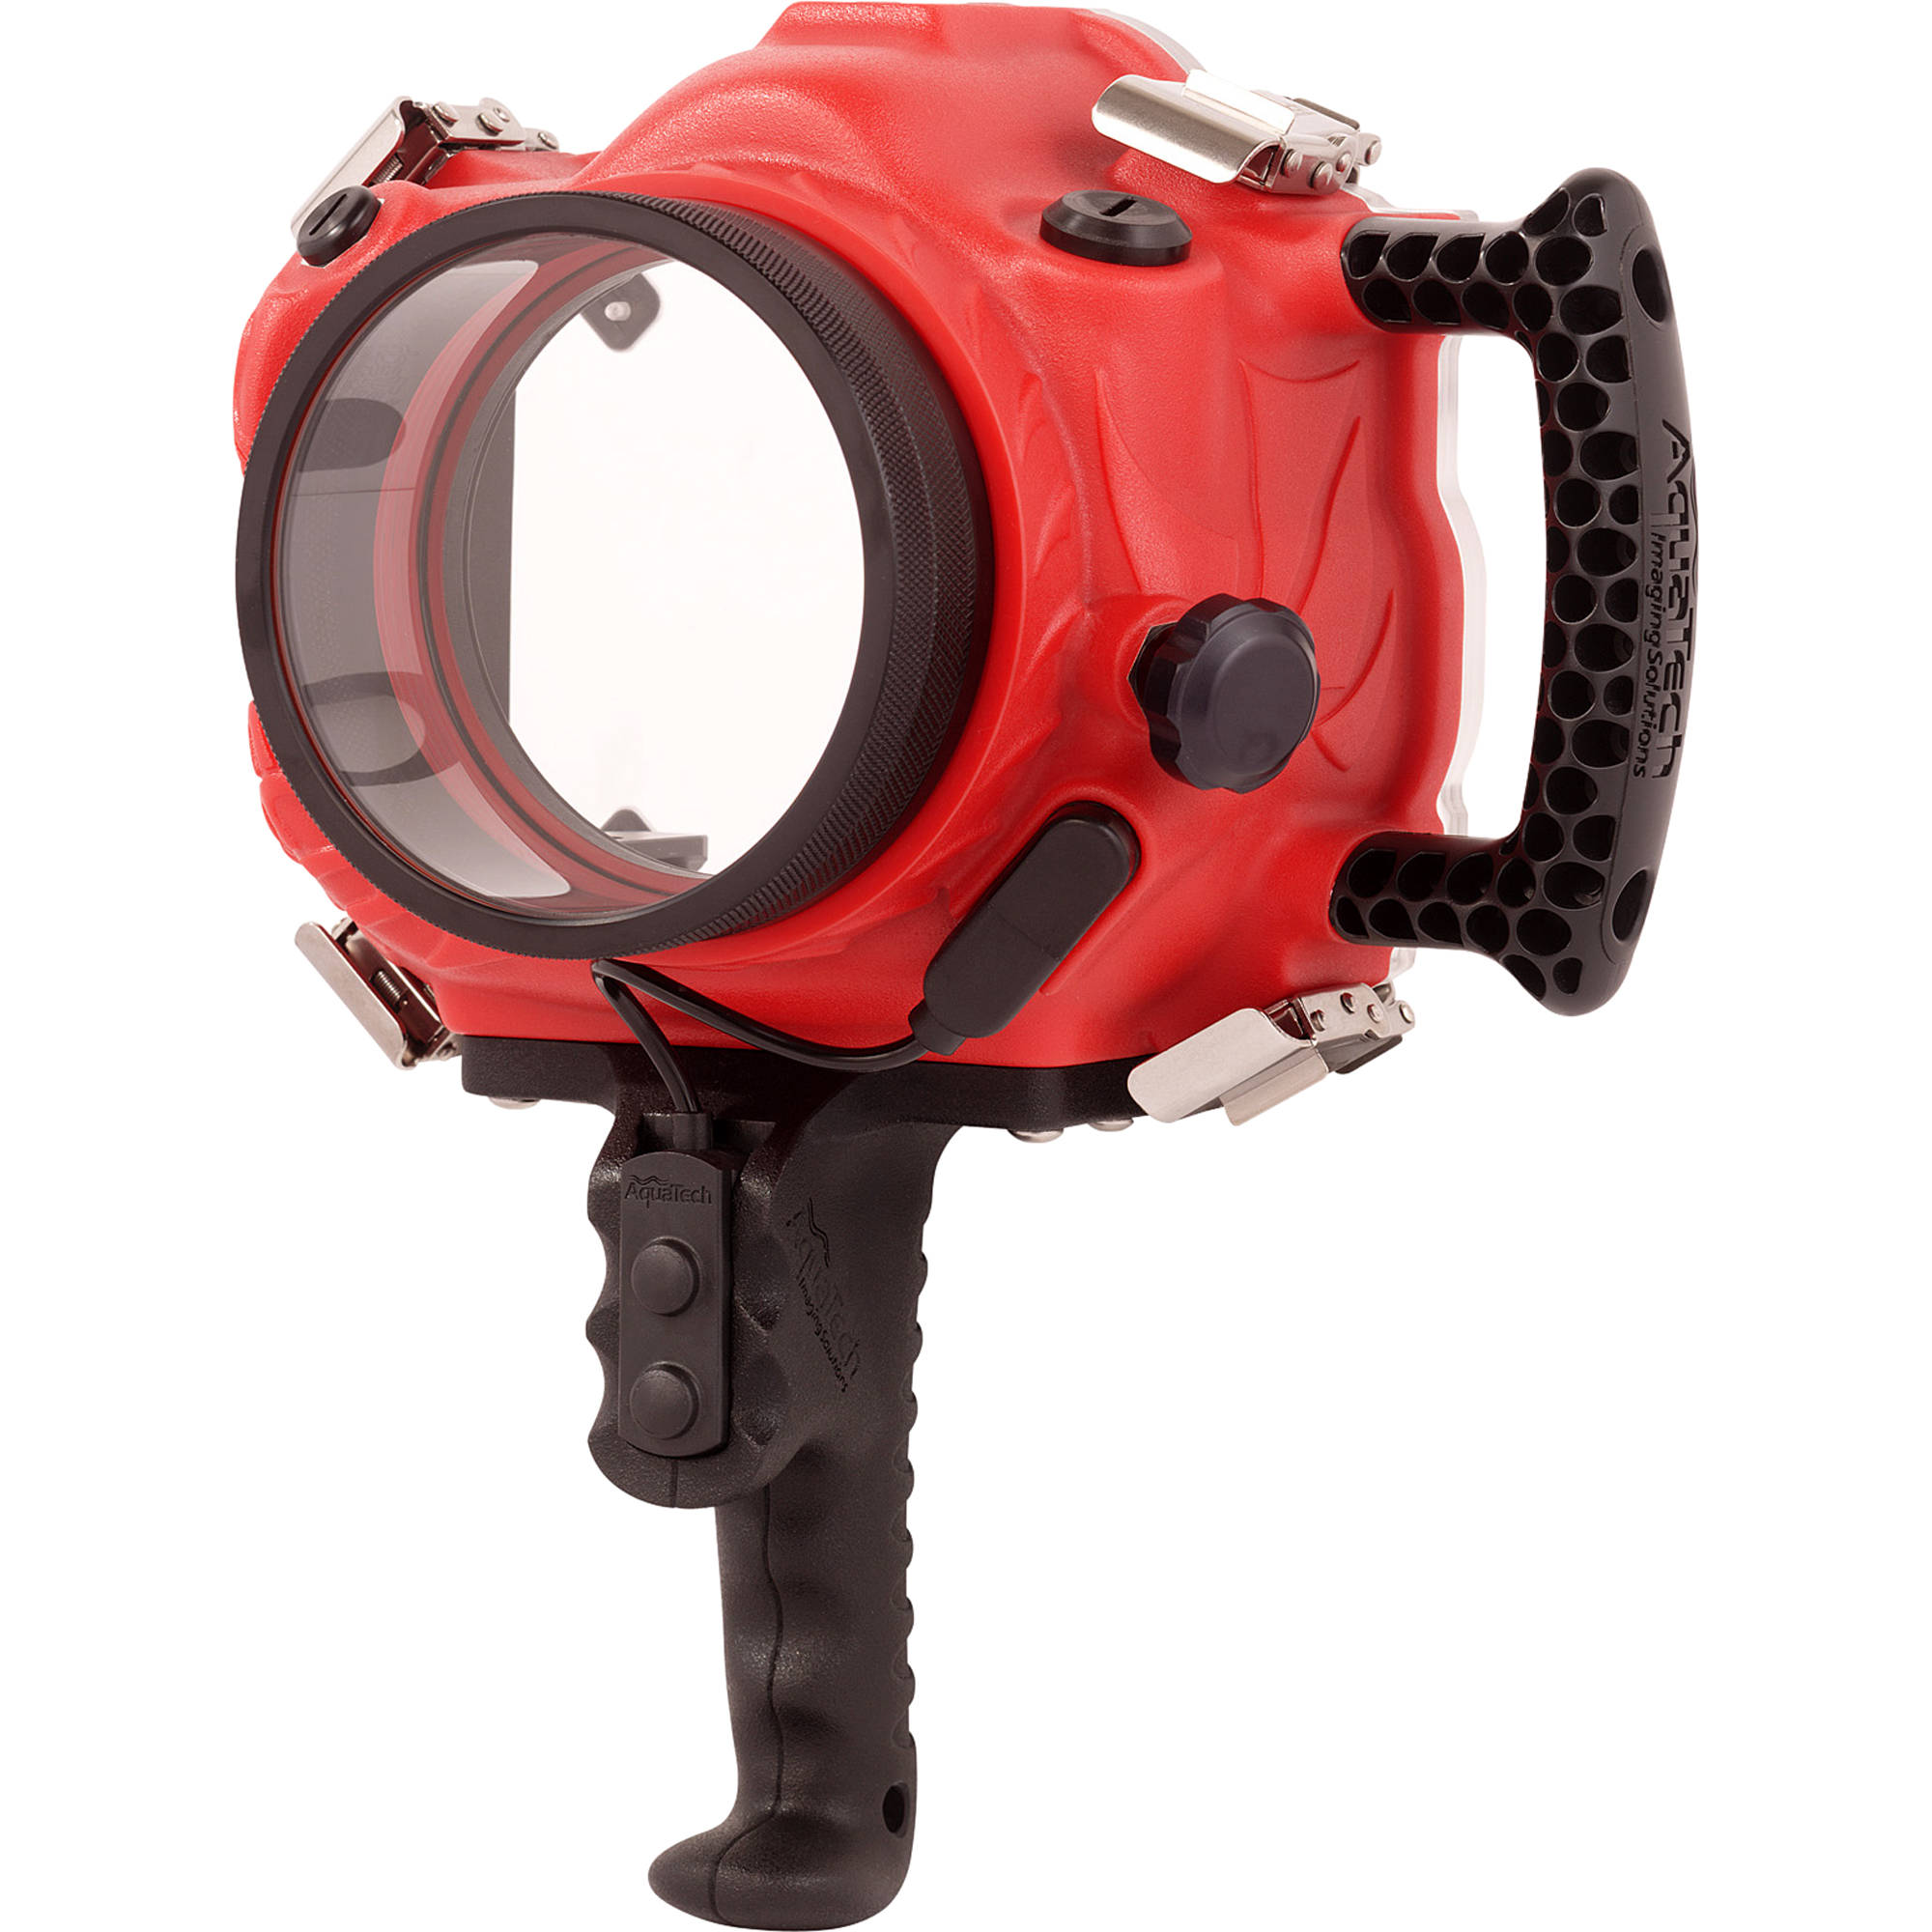 AquaTech BASE 70D Underwater Sport Housing for Canon EOS 70D or 80D